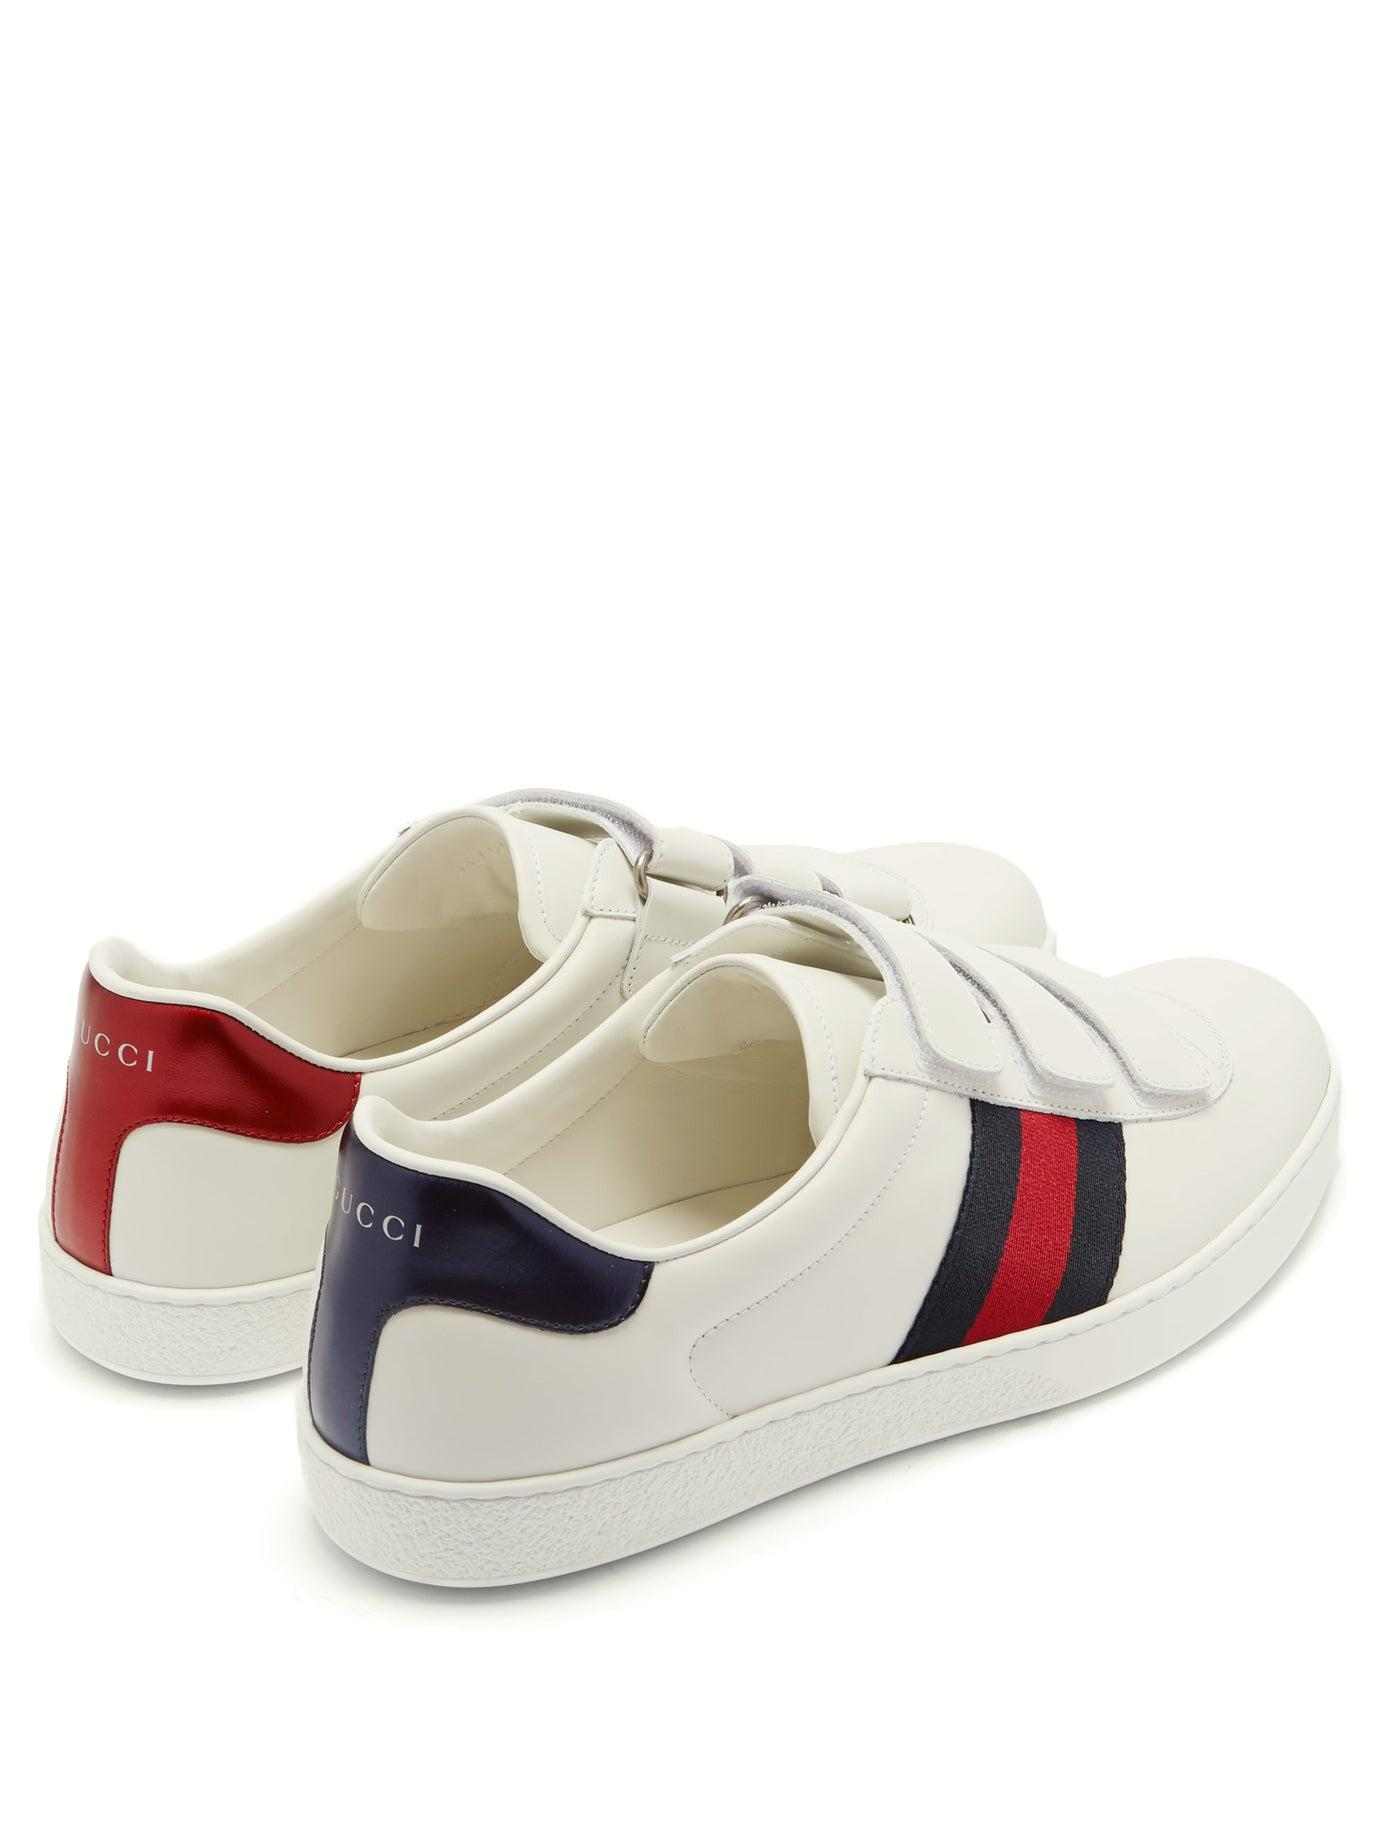 Aceweb new ace web-stripe low-top leather trainers